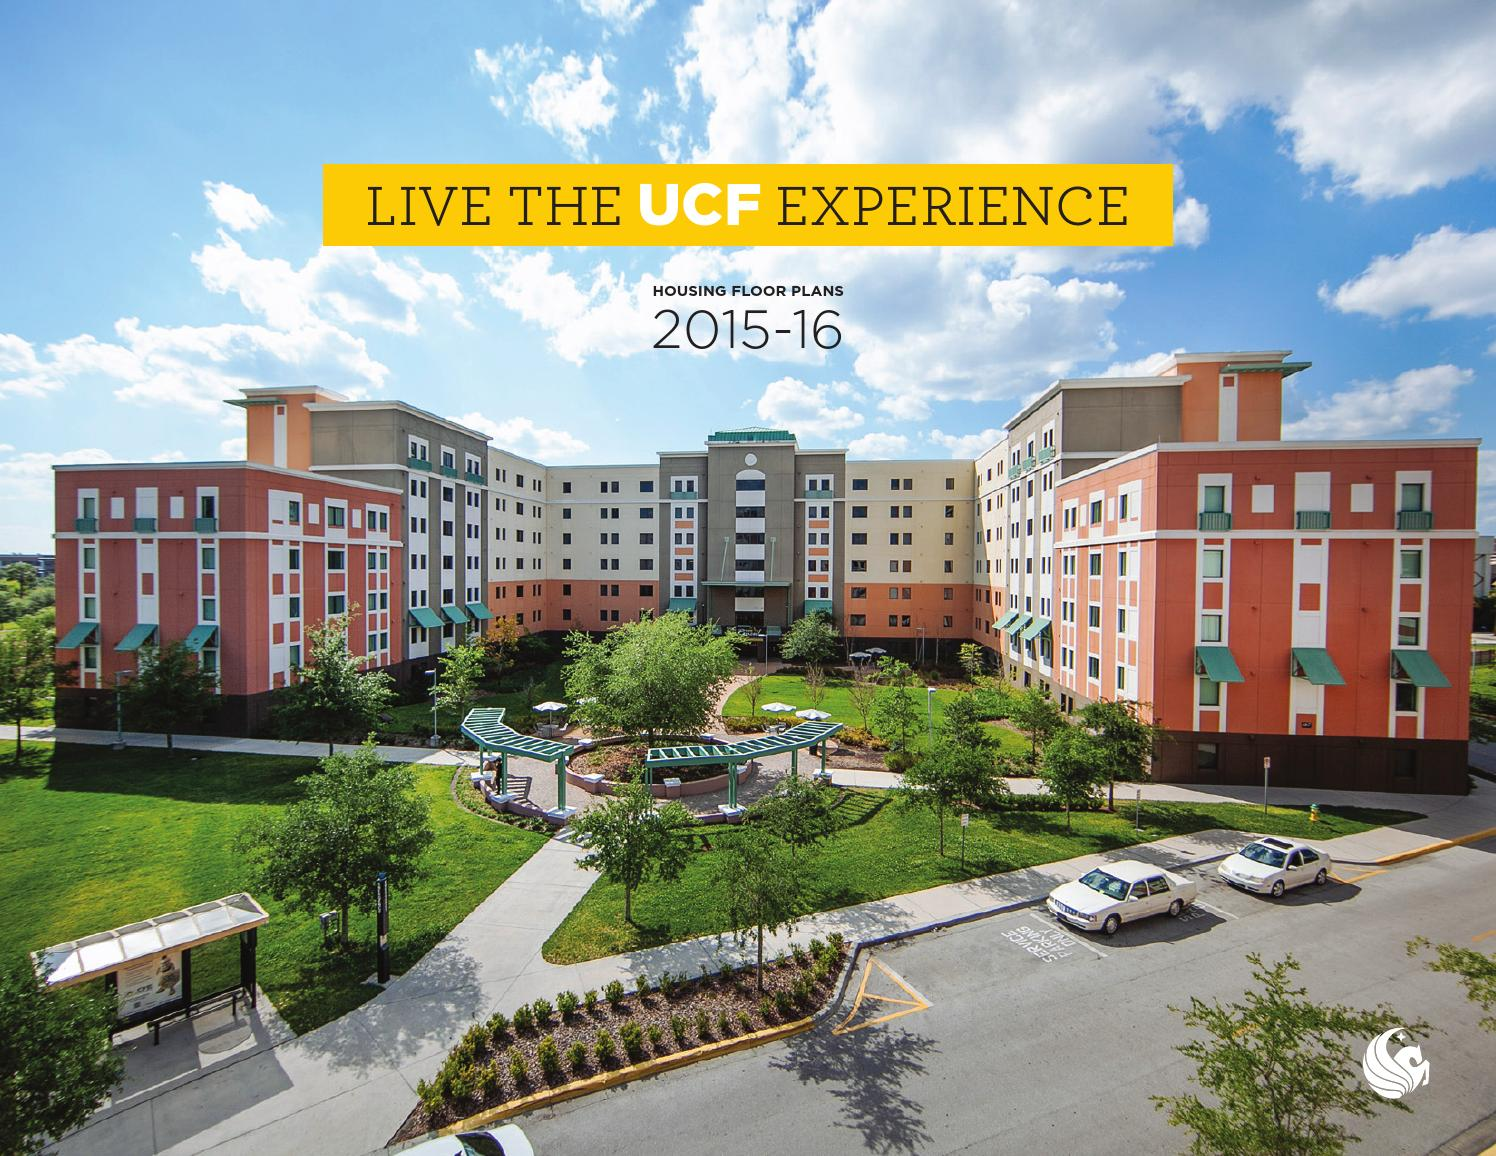 3 Bedroom Apartments With Utilities Included Ucf Housing Floorplans 2015 16 By University Of Central